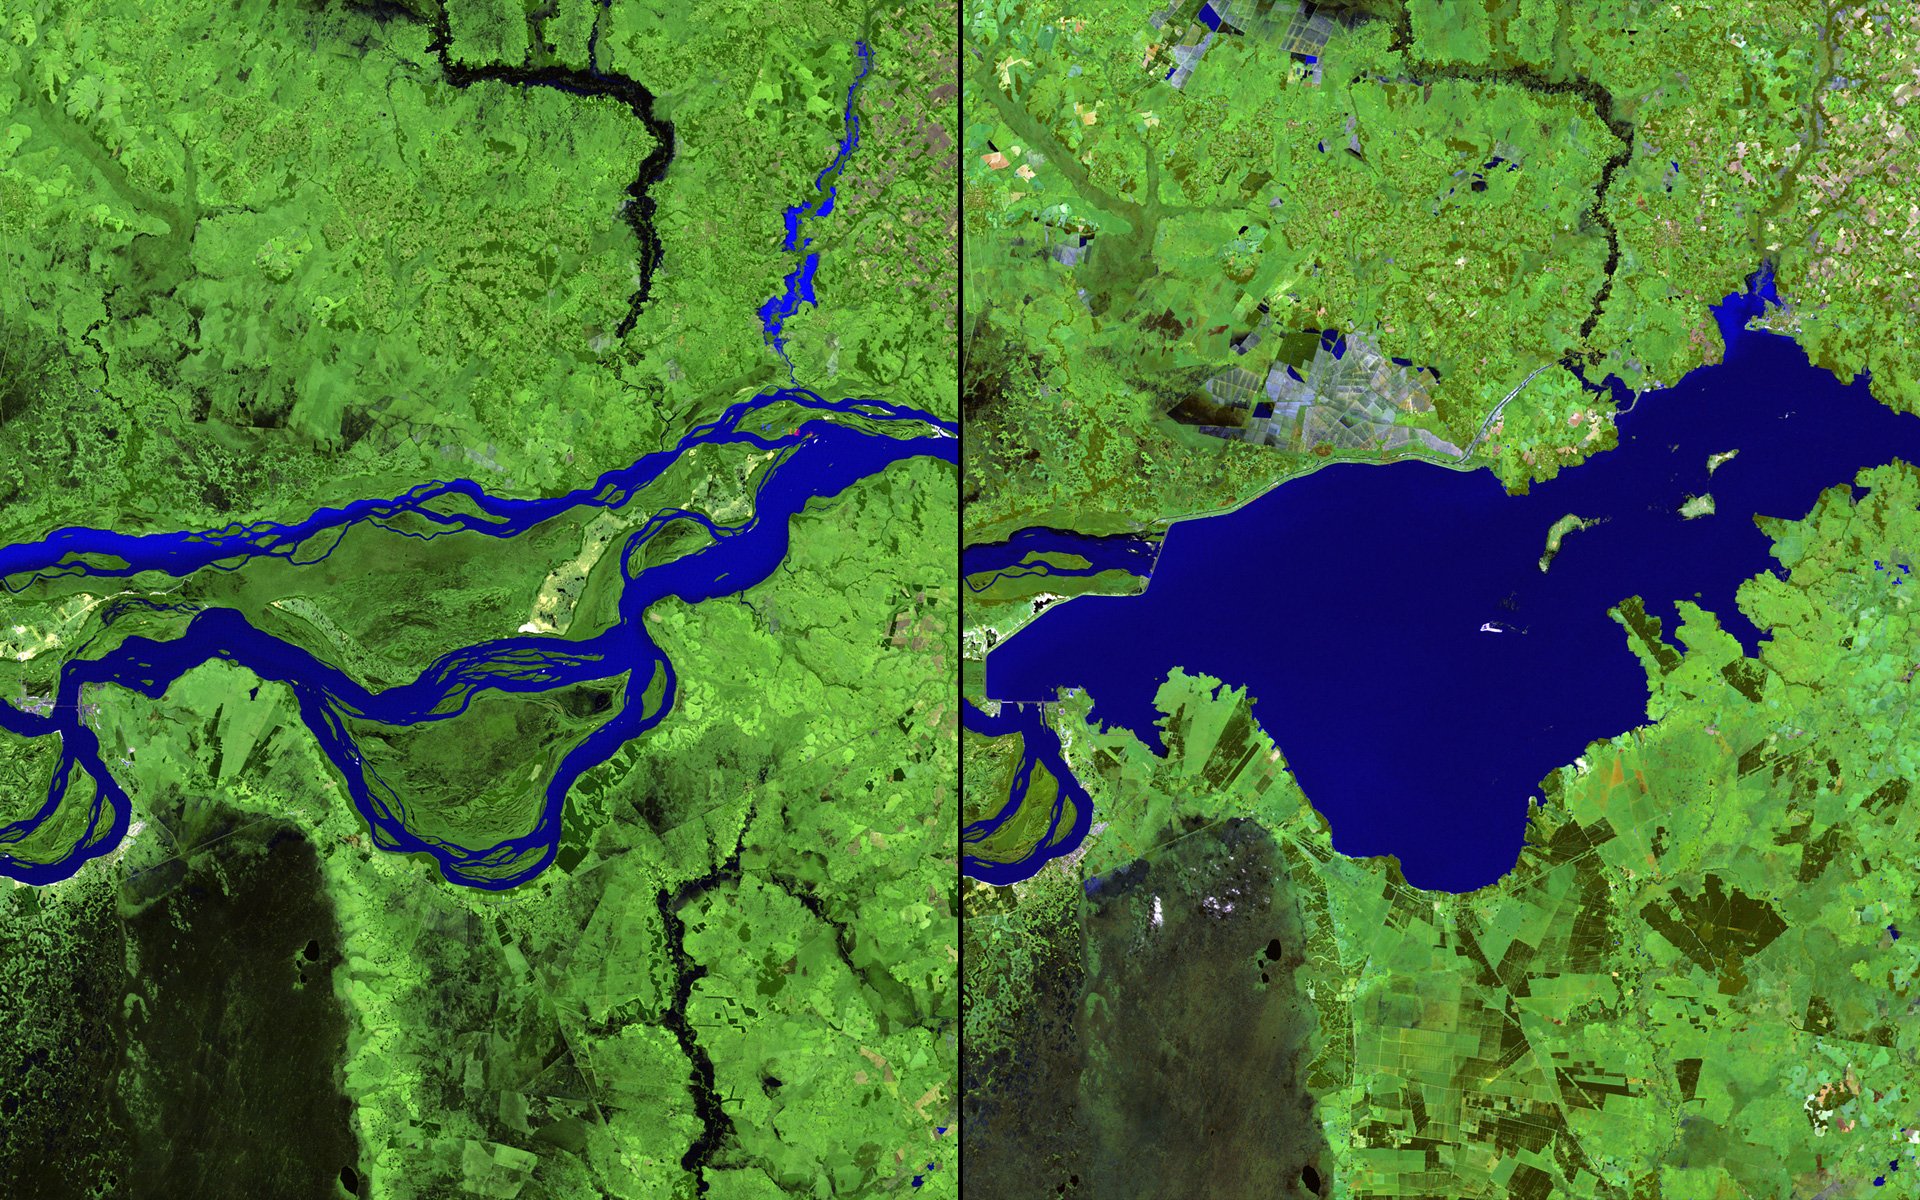 15 before-and-after images that show how we're transforming the planet